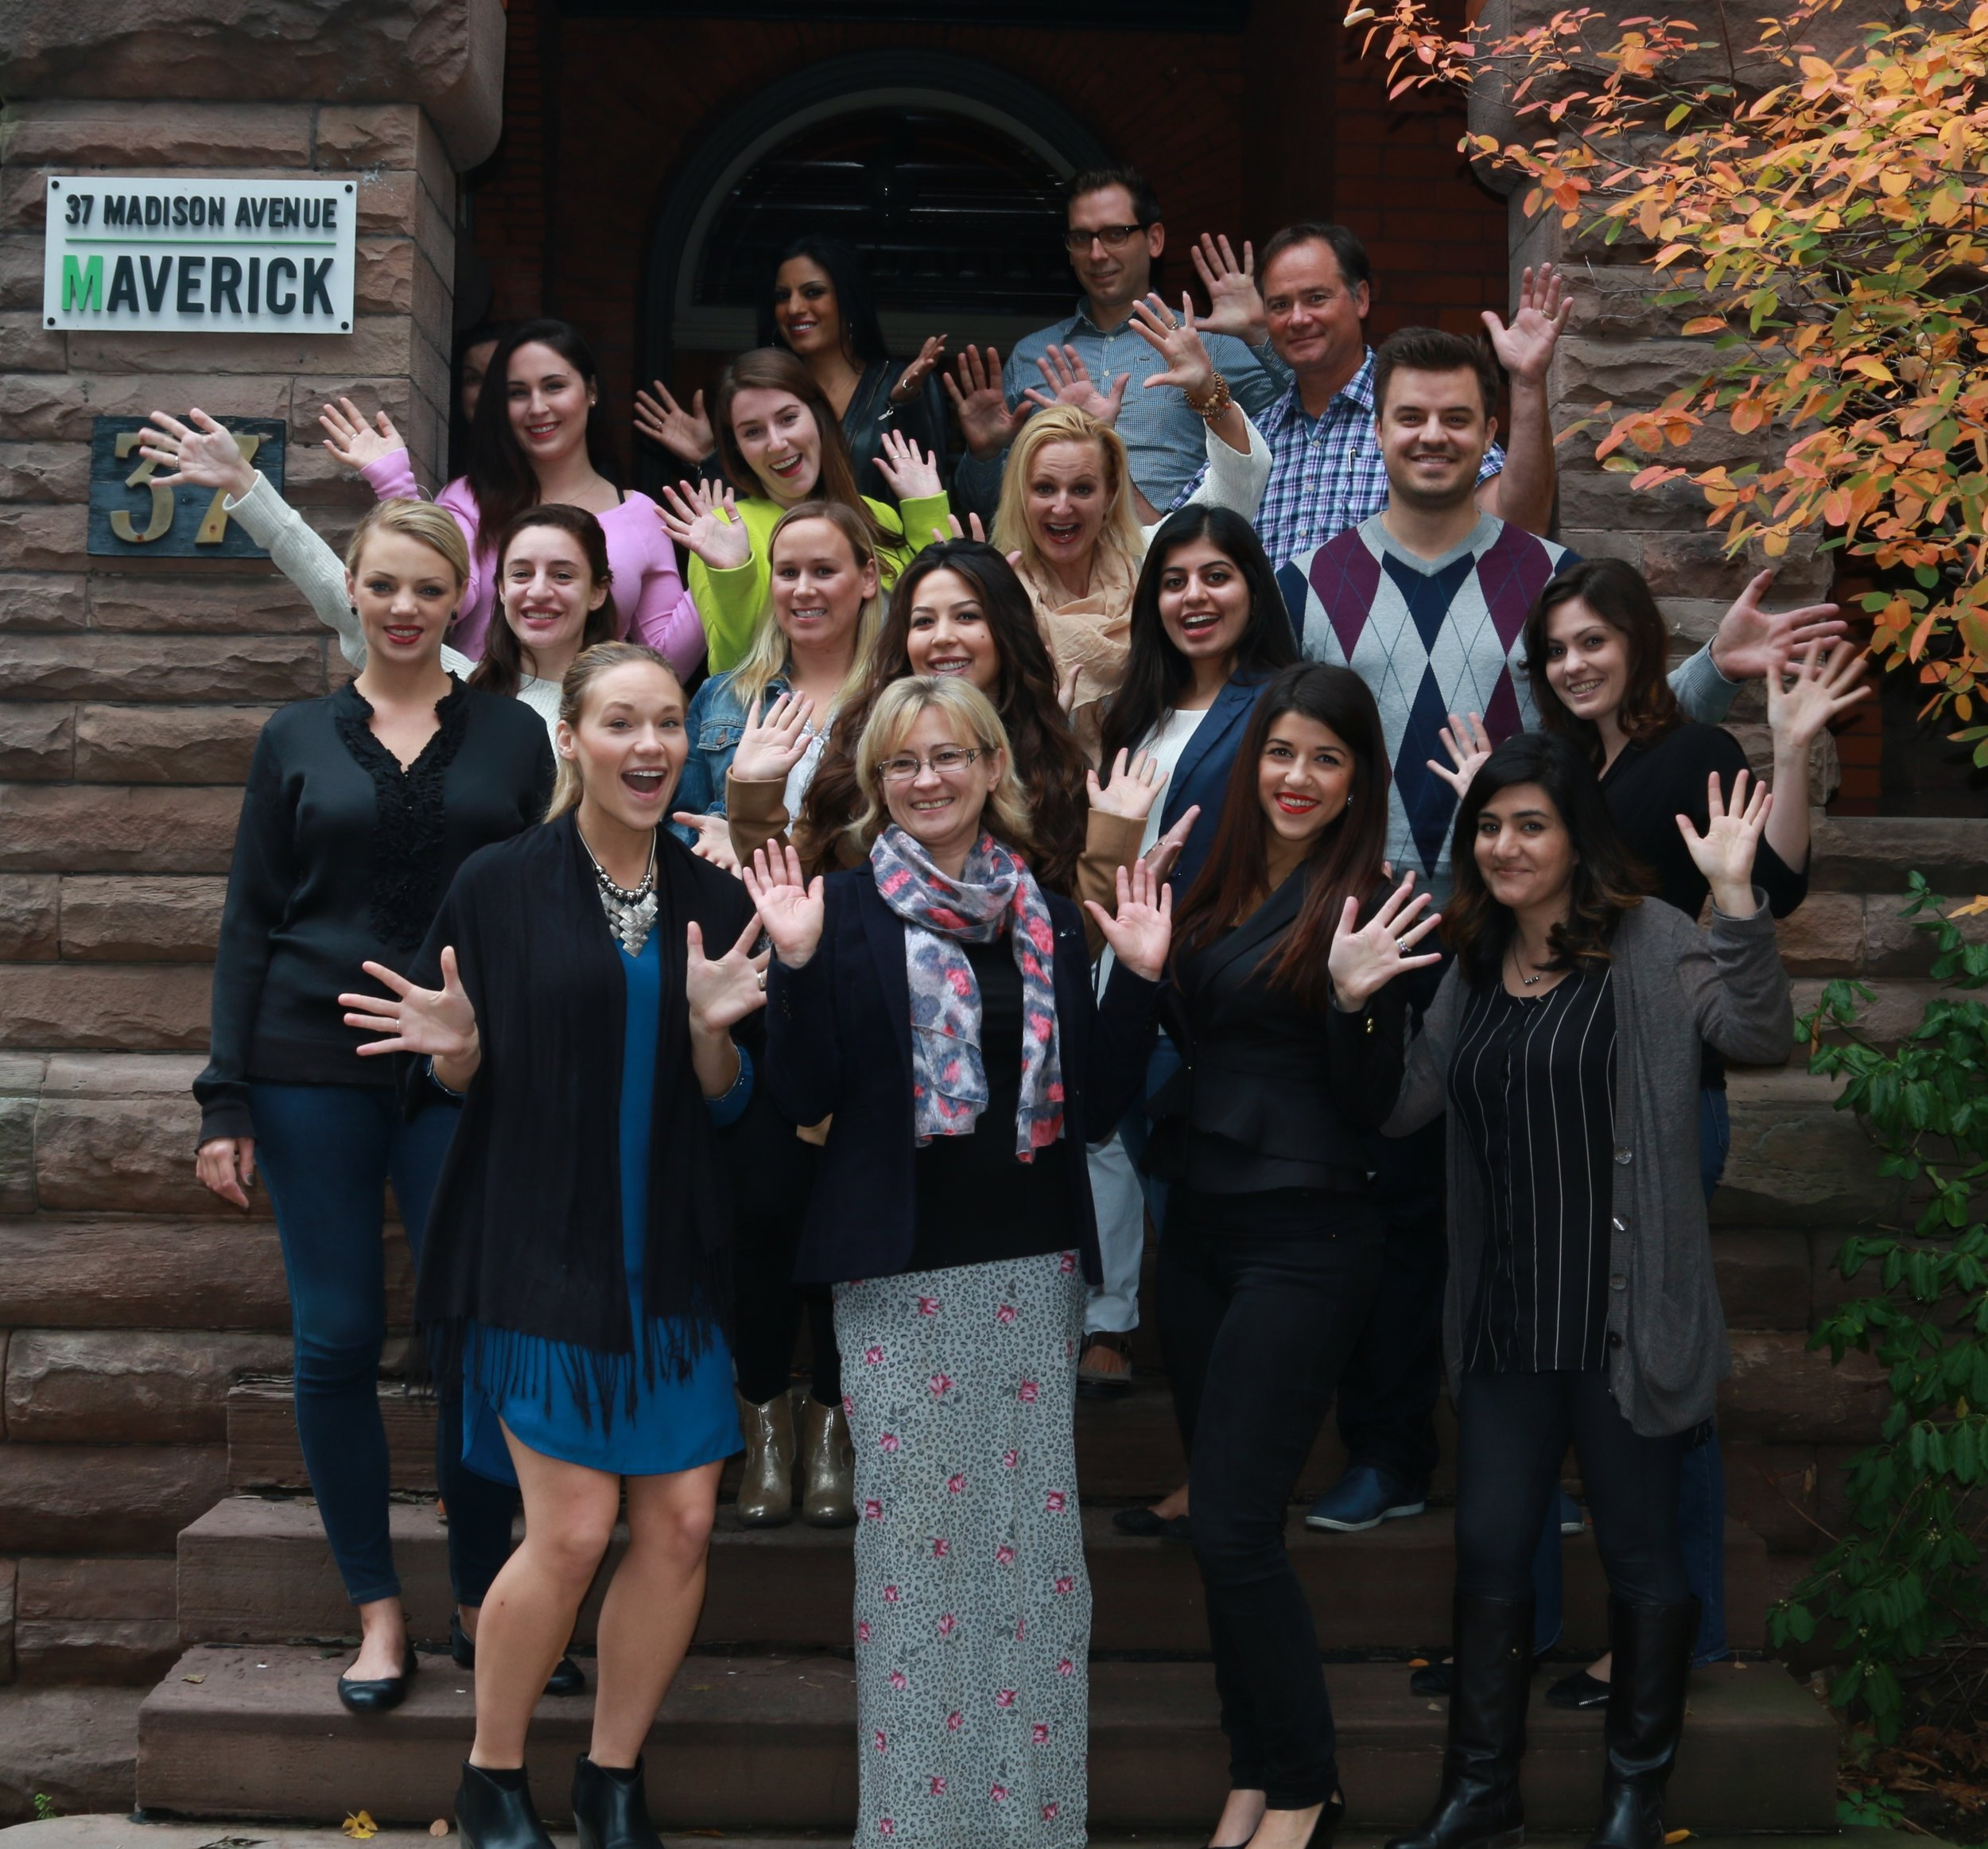 Staff photo - Fall 2014 - JAZZ HANDS.jpg